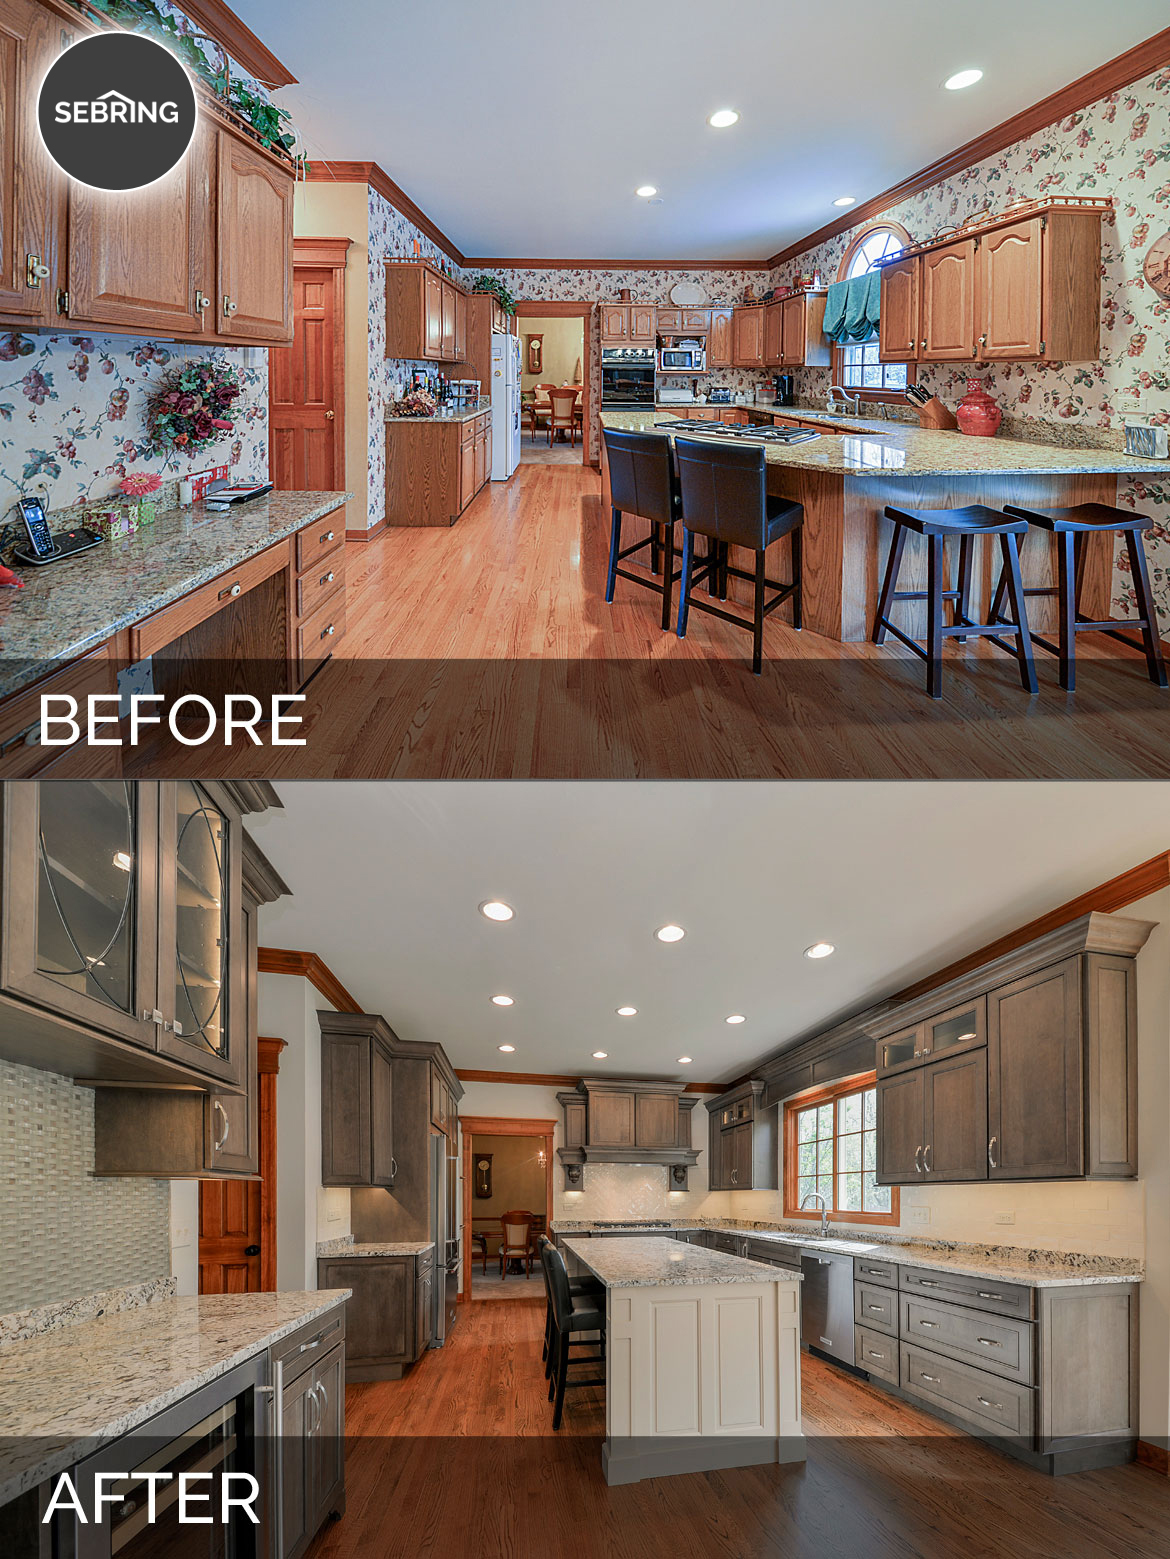 Kitchen Remodel Wheaton Before & After - Sebring Design Build